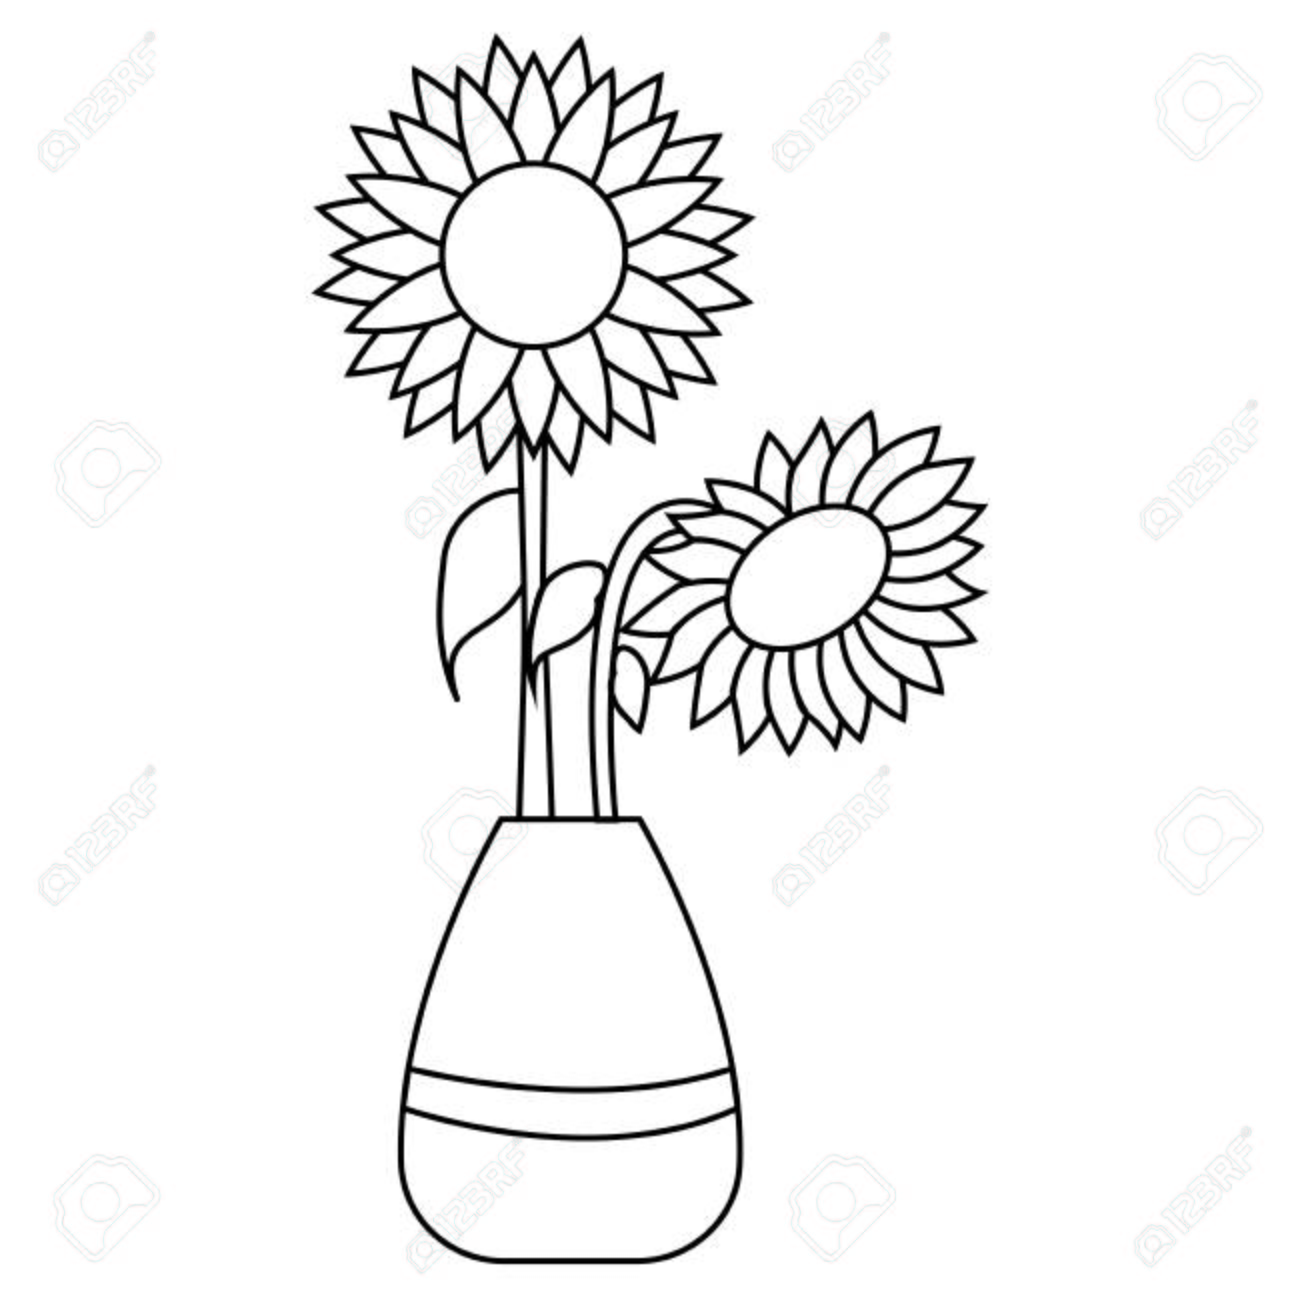 Cute Drawing Outline Sunflower Vector Illustration Design Royalty Free Cliparts Vectors And Stock Illustration Image 112561872 Pdf flower outline to print. cute drawing outline sunflower vector illustration design